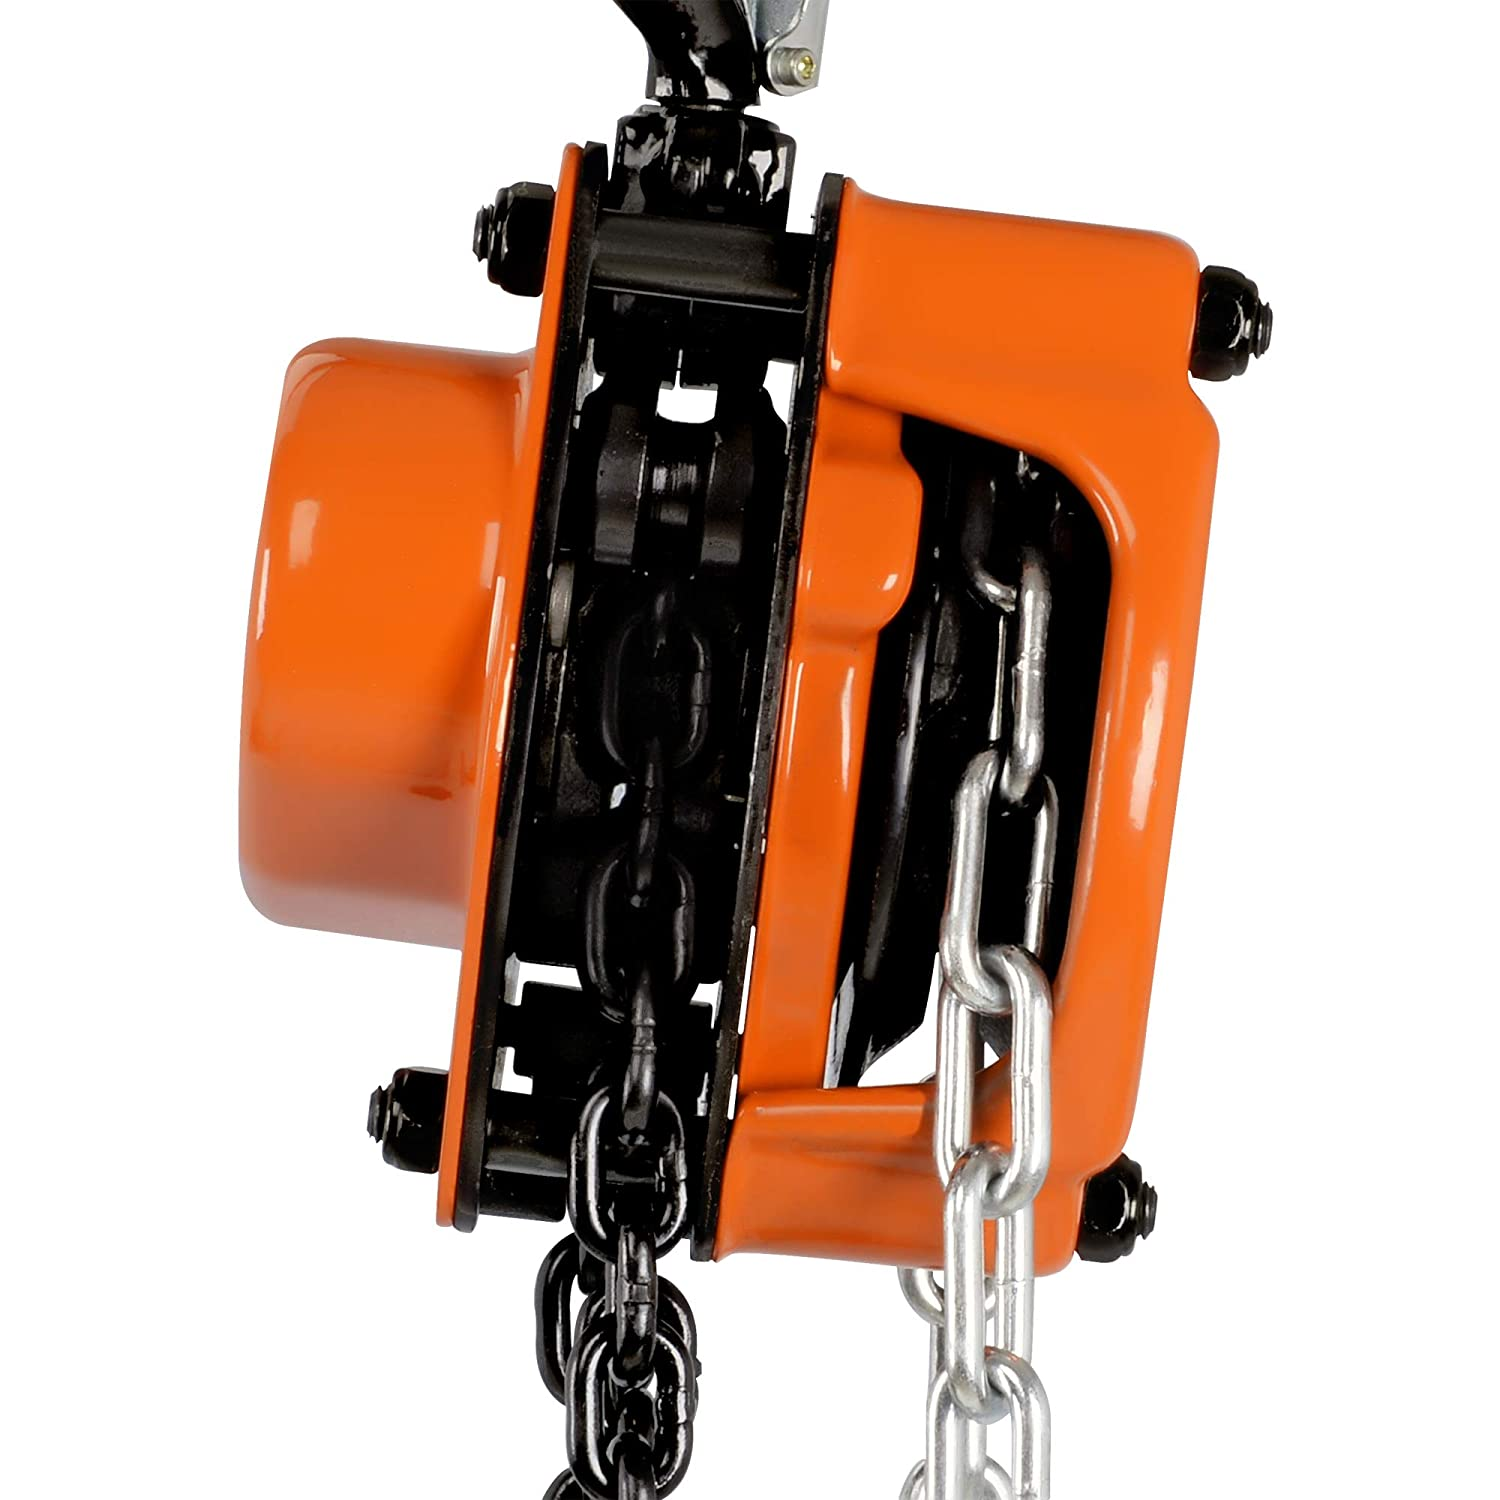 B07N7Y29KL SuperHandy Manual Chain Block Hoist Come Along 1/2 TON 1100 LBS Cap 10FT Lift 2 Heavy Duty Hooks Commercial Grade Steel for Lifting Pulling Construction Building Garage Warehouse Automotive Machinery 71e8Bs4ziOL._SL1500_